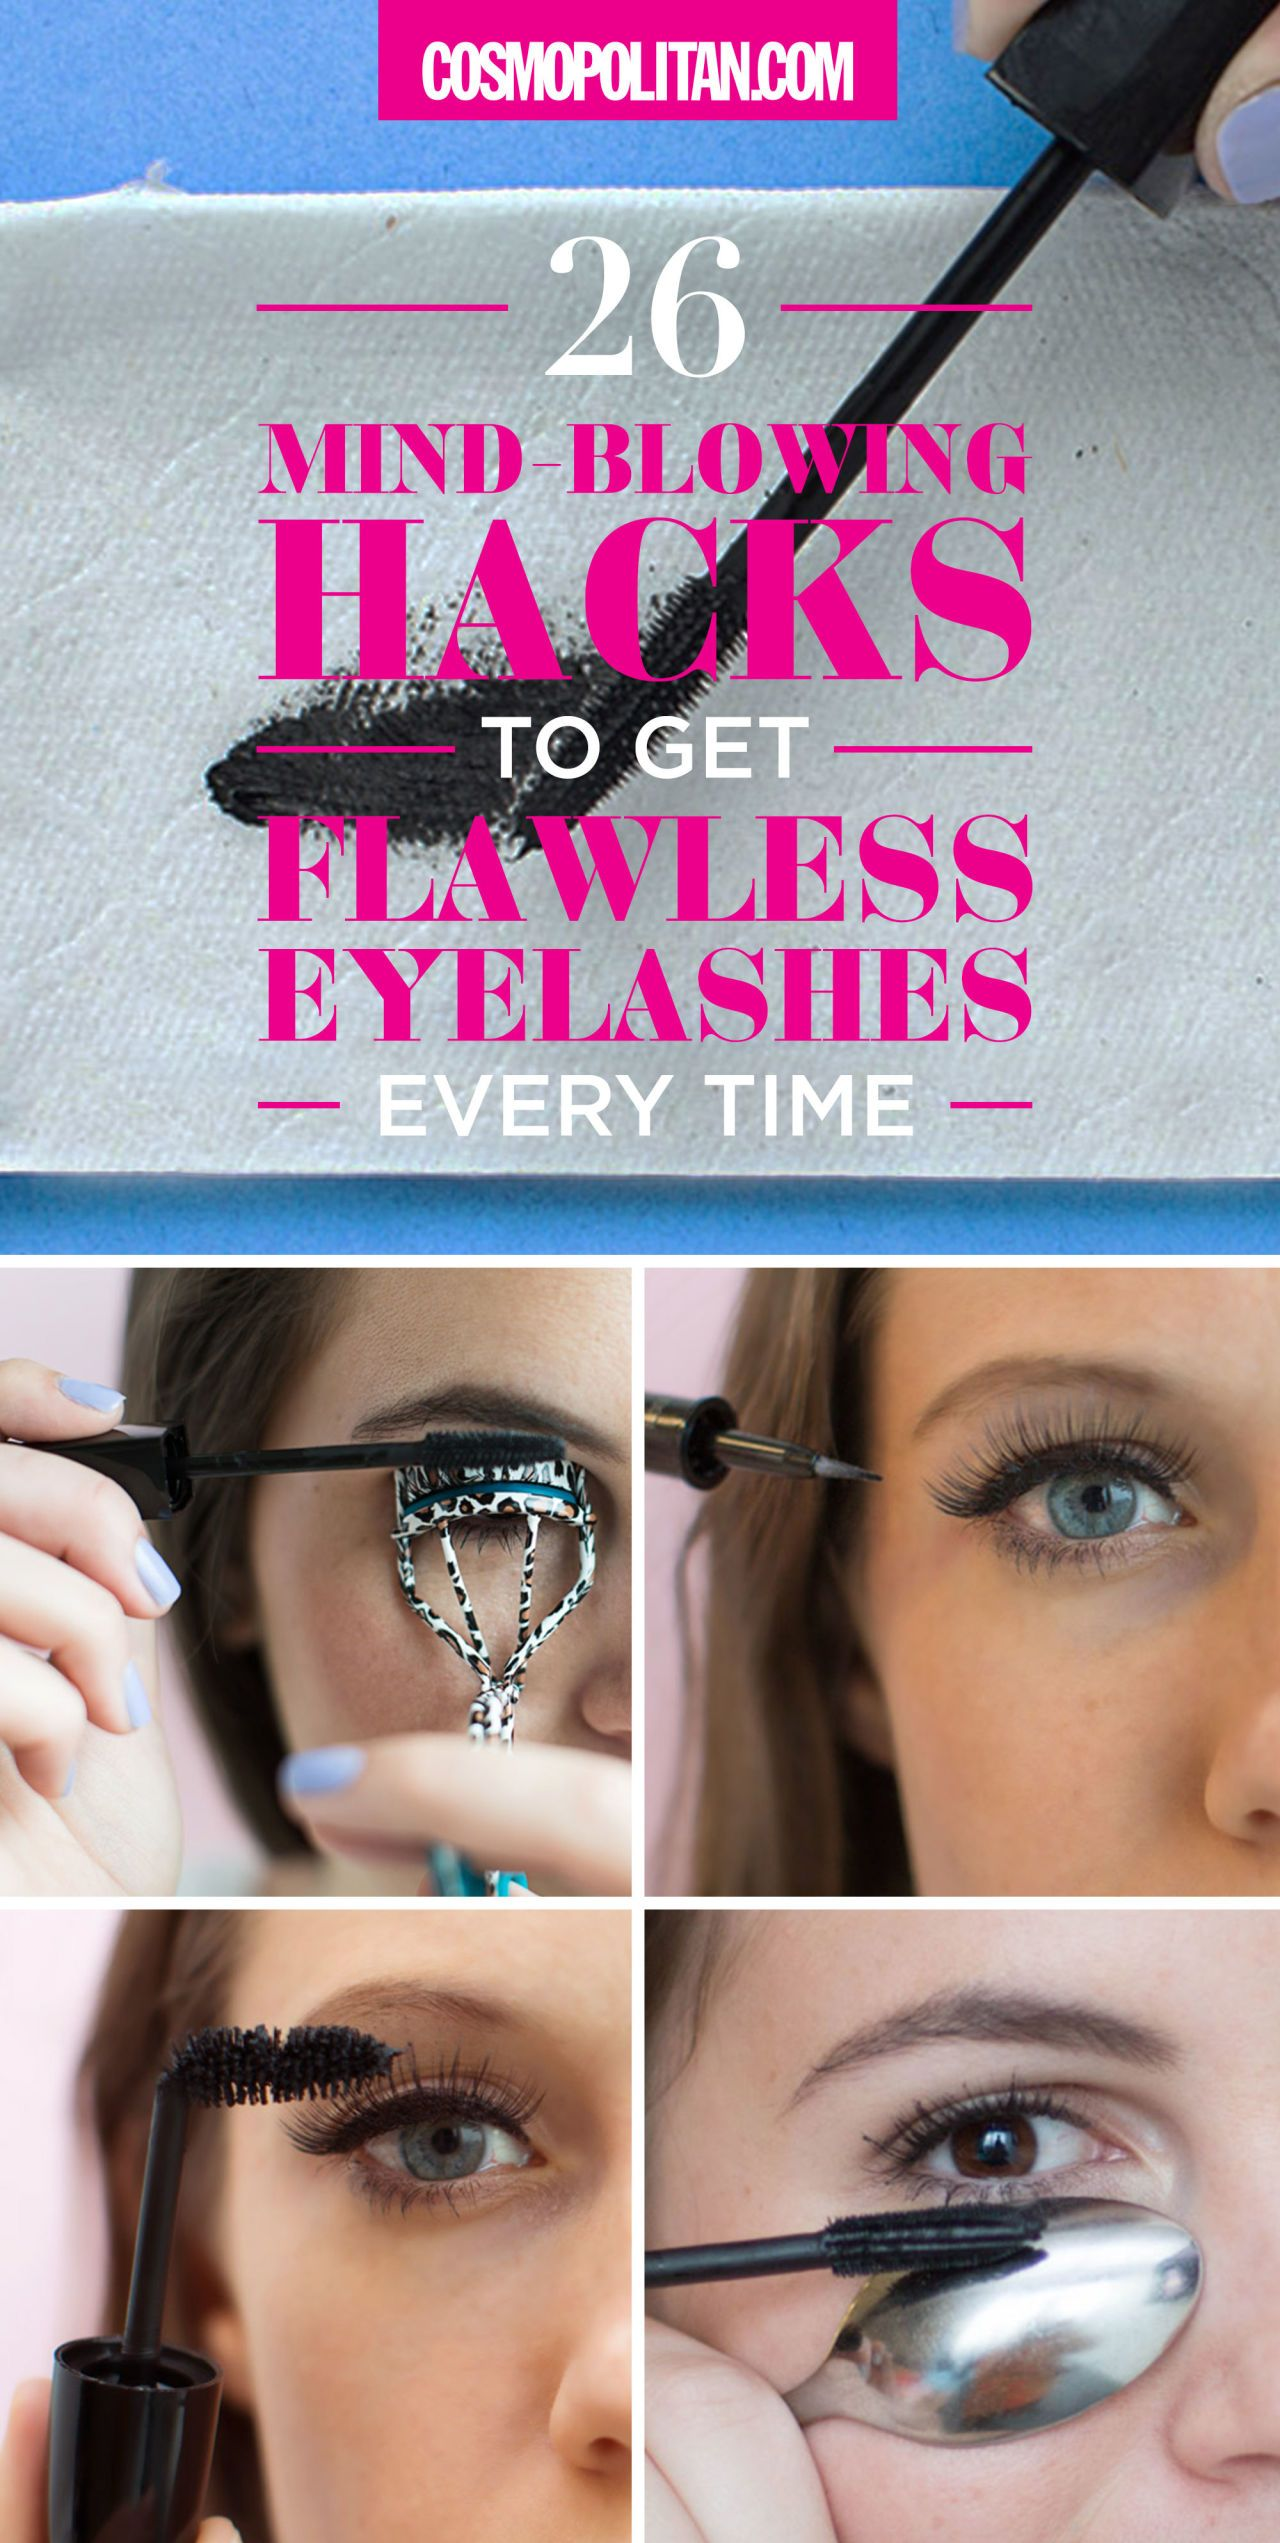 9f4a75f285c Our beauty editors rounded up THE BEST eyelash hacks and put together this  guide for you! Learn how to prevent clumps, how to easily apply false lashes,  ...